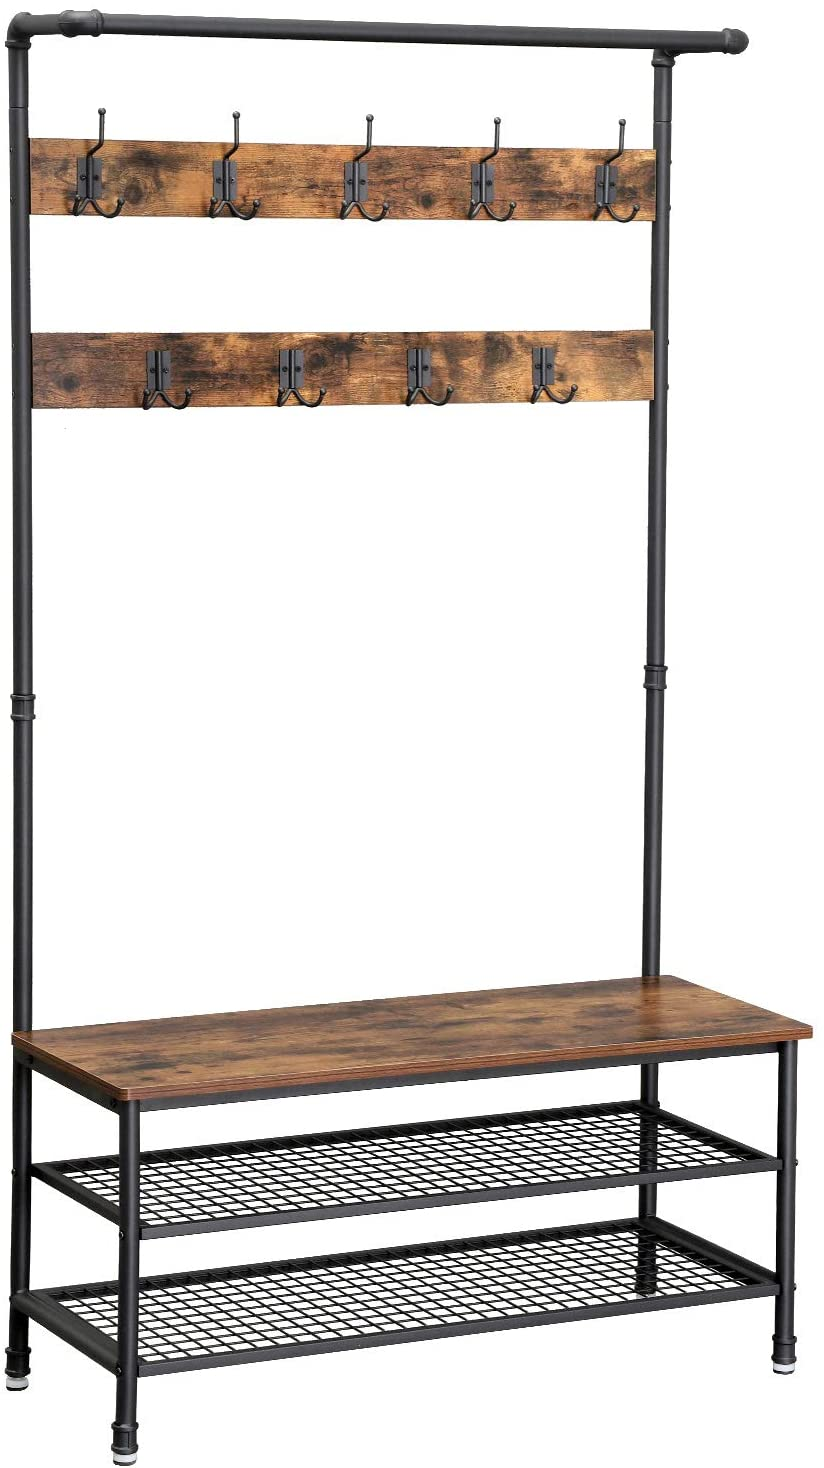 Enjoy fast, free nationwide shipping!  Family owned and operated, HawkinsWoodshop.com is your one stop shop for affordable furniture.  Shop HawkinsWoodshop.com for solid wood & metal modern, traditional, contemporary, industrial, custom, rustic, and farmhouse furniture including our Large Ryan Metal Pipe & Wood Hall Tree.